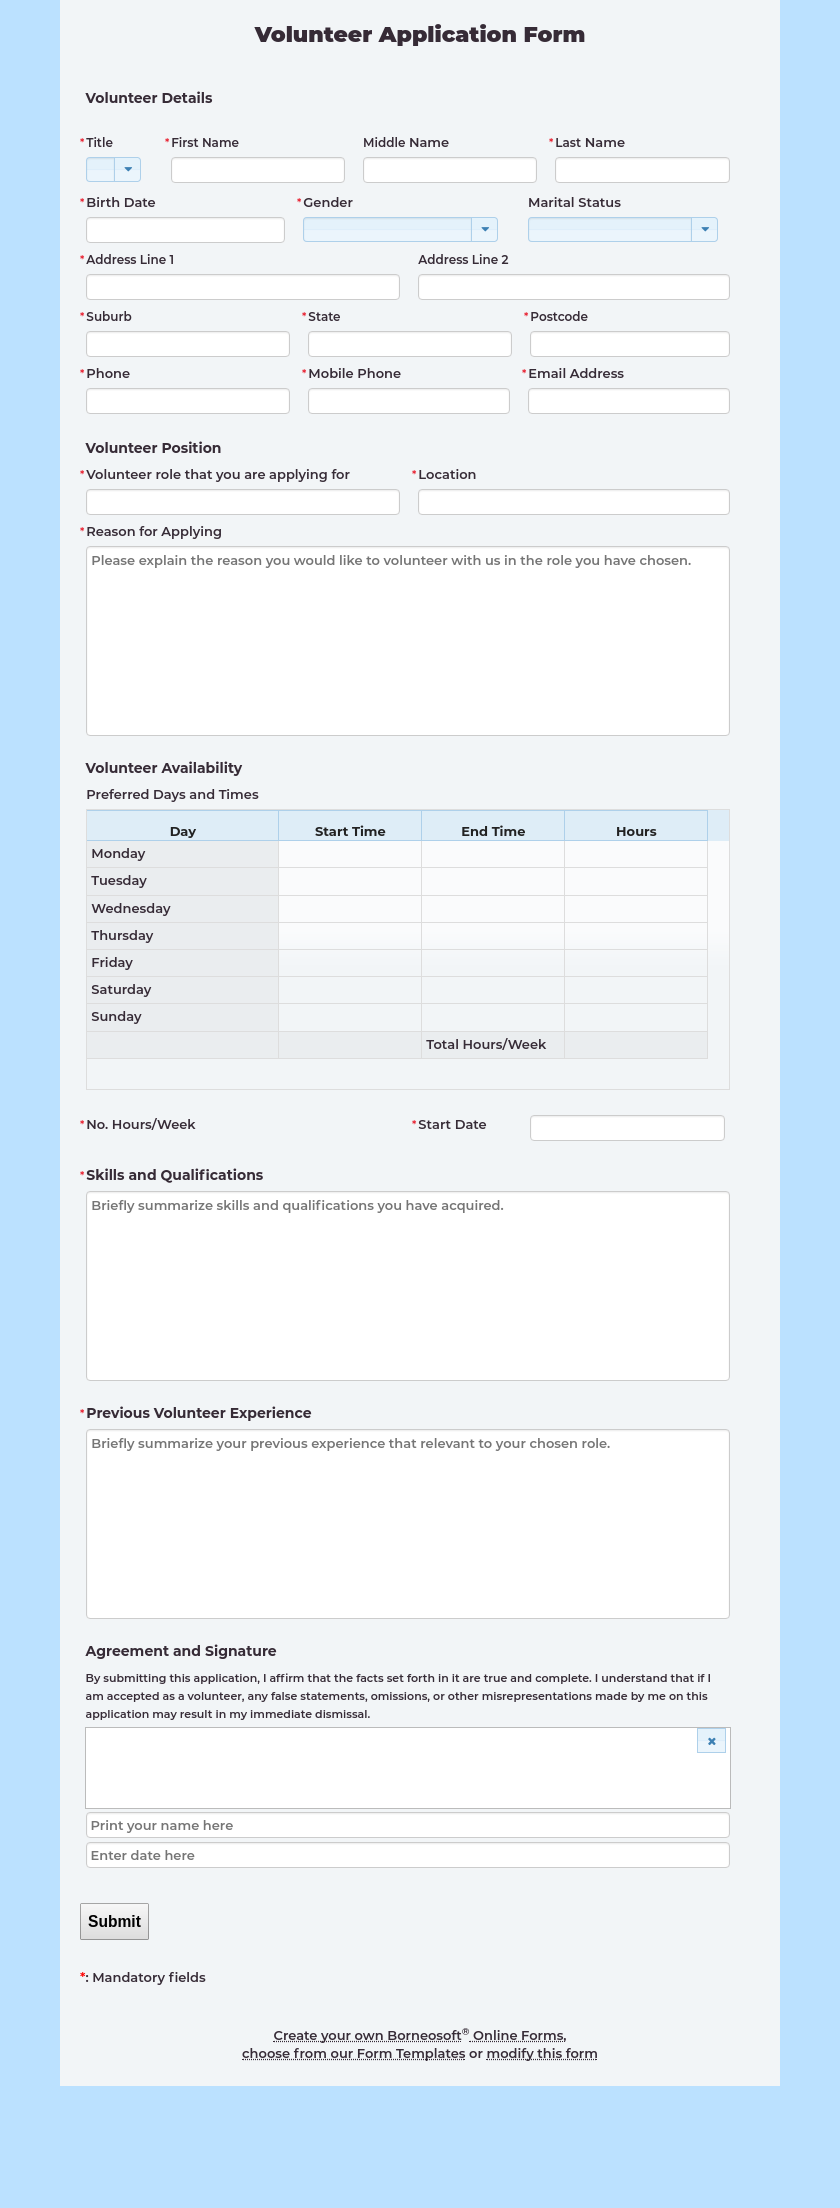 Volunteer Application Form By Borneosoft Online Forms